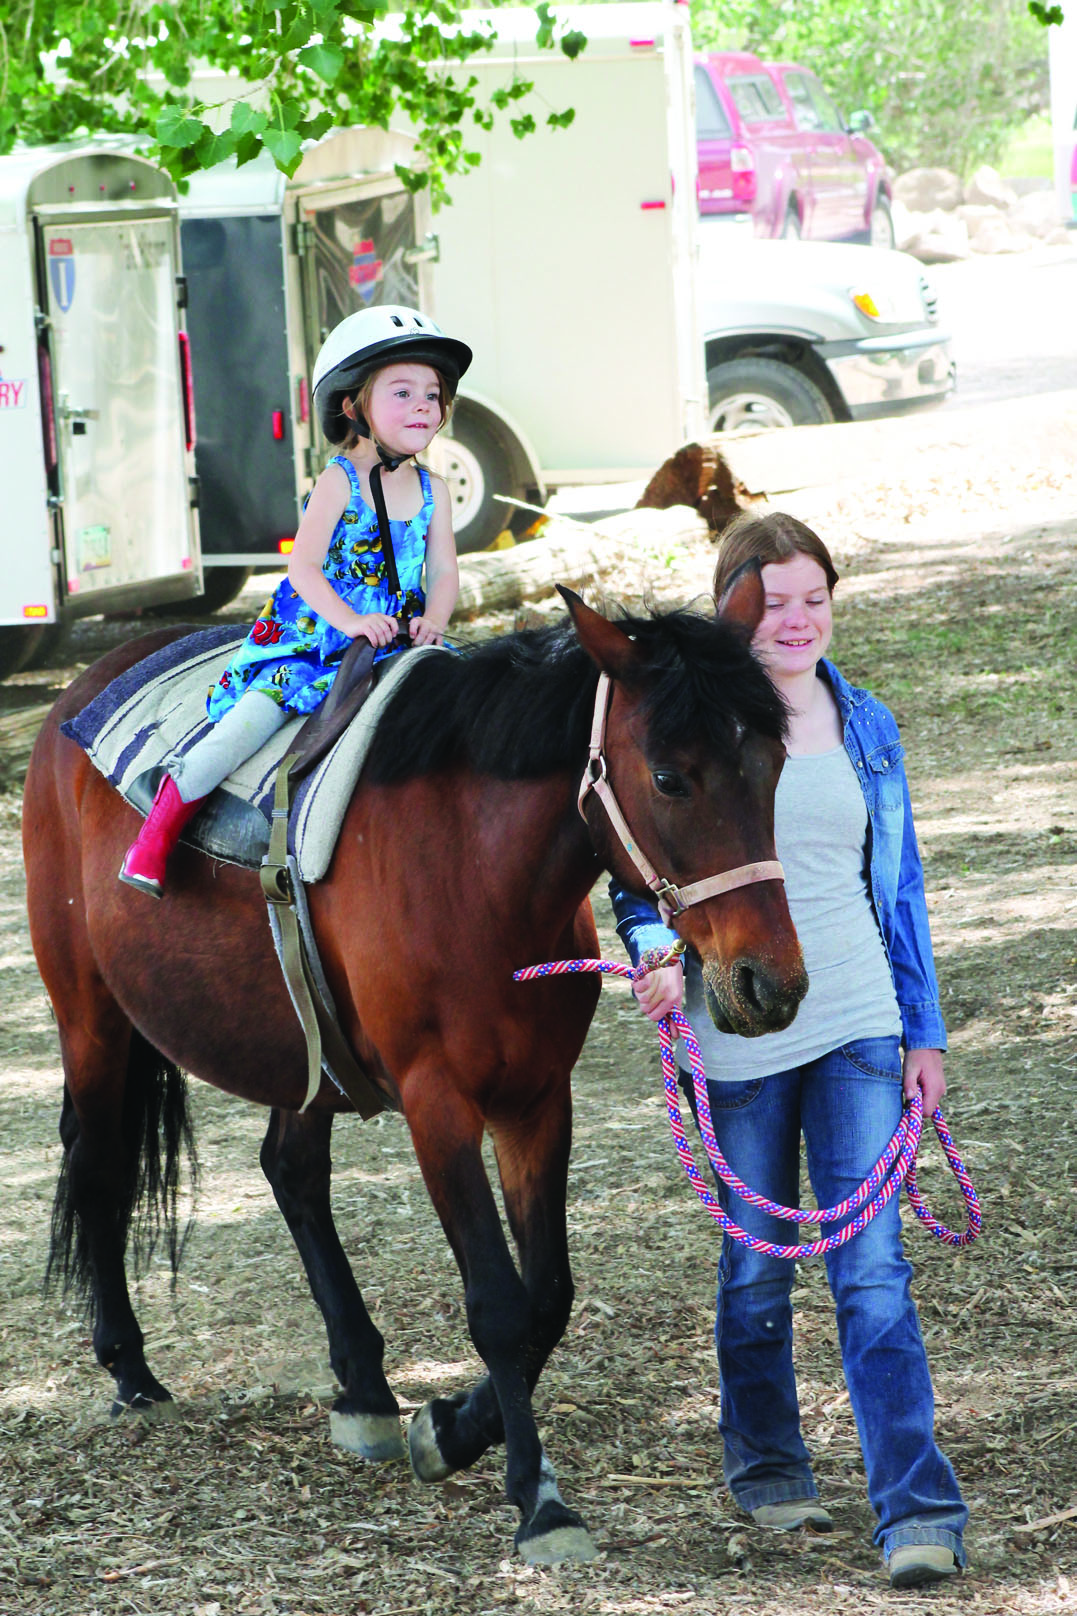 Gogo Carleton rode a horse for the first time at Bishop City Park last Saturday. Freedom in Motion Therapeutic Riding Center hosted the rides as an organizational fundraiser. Freedom in Motion currently sees 74 students on a weekly basis according to its website. Info: 760.933.2606.